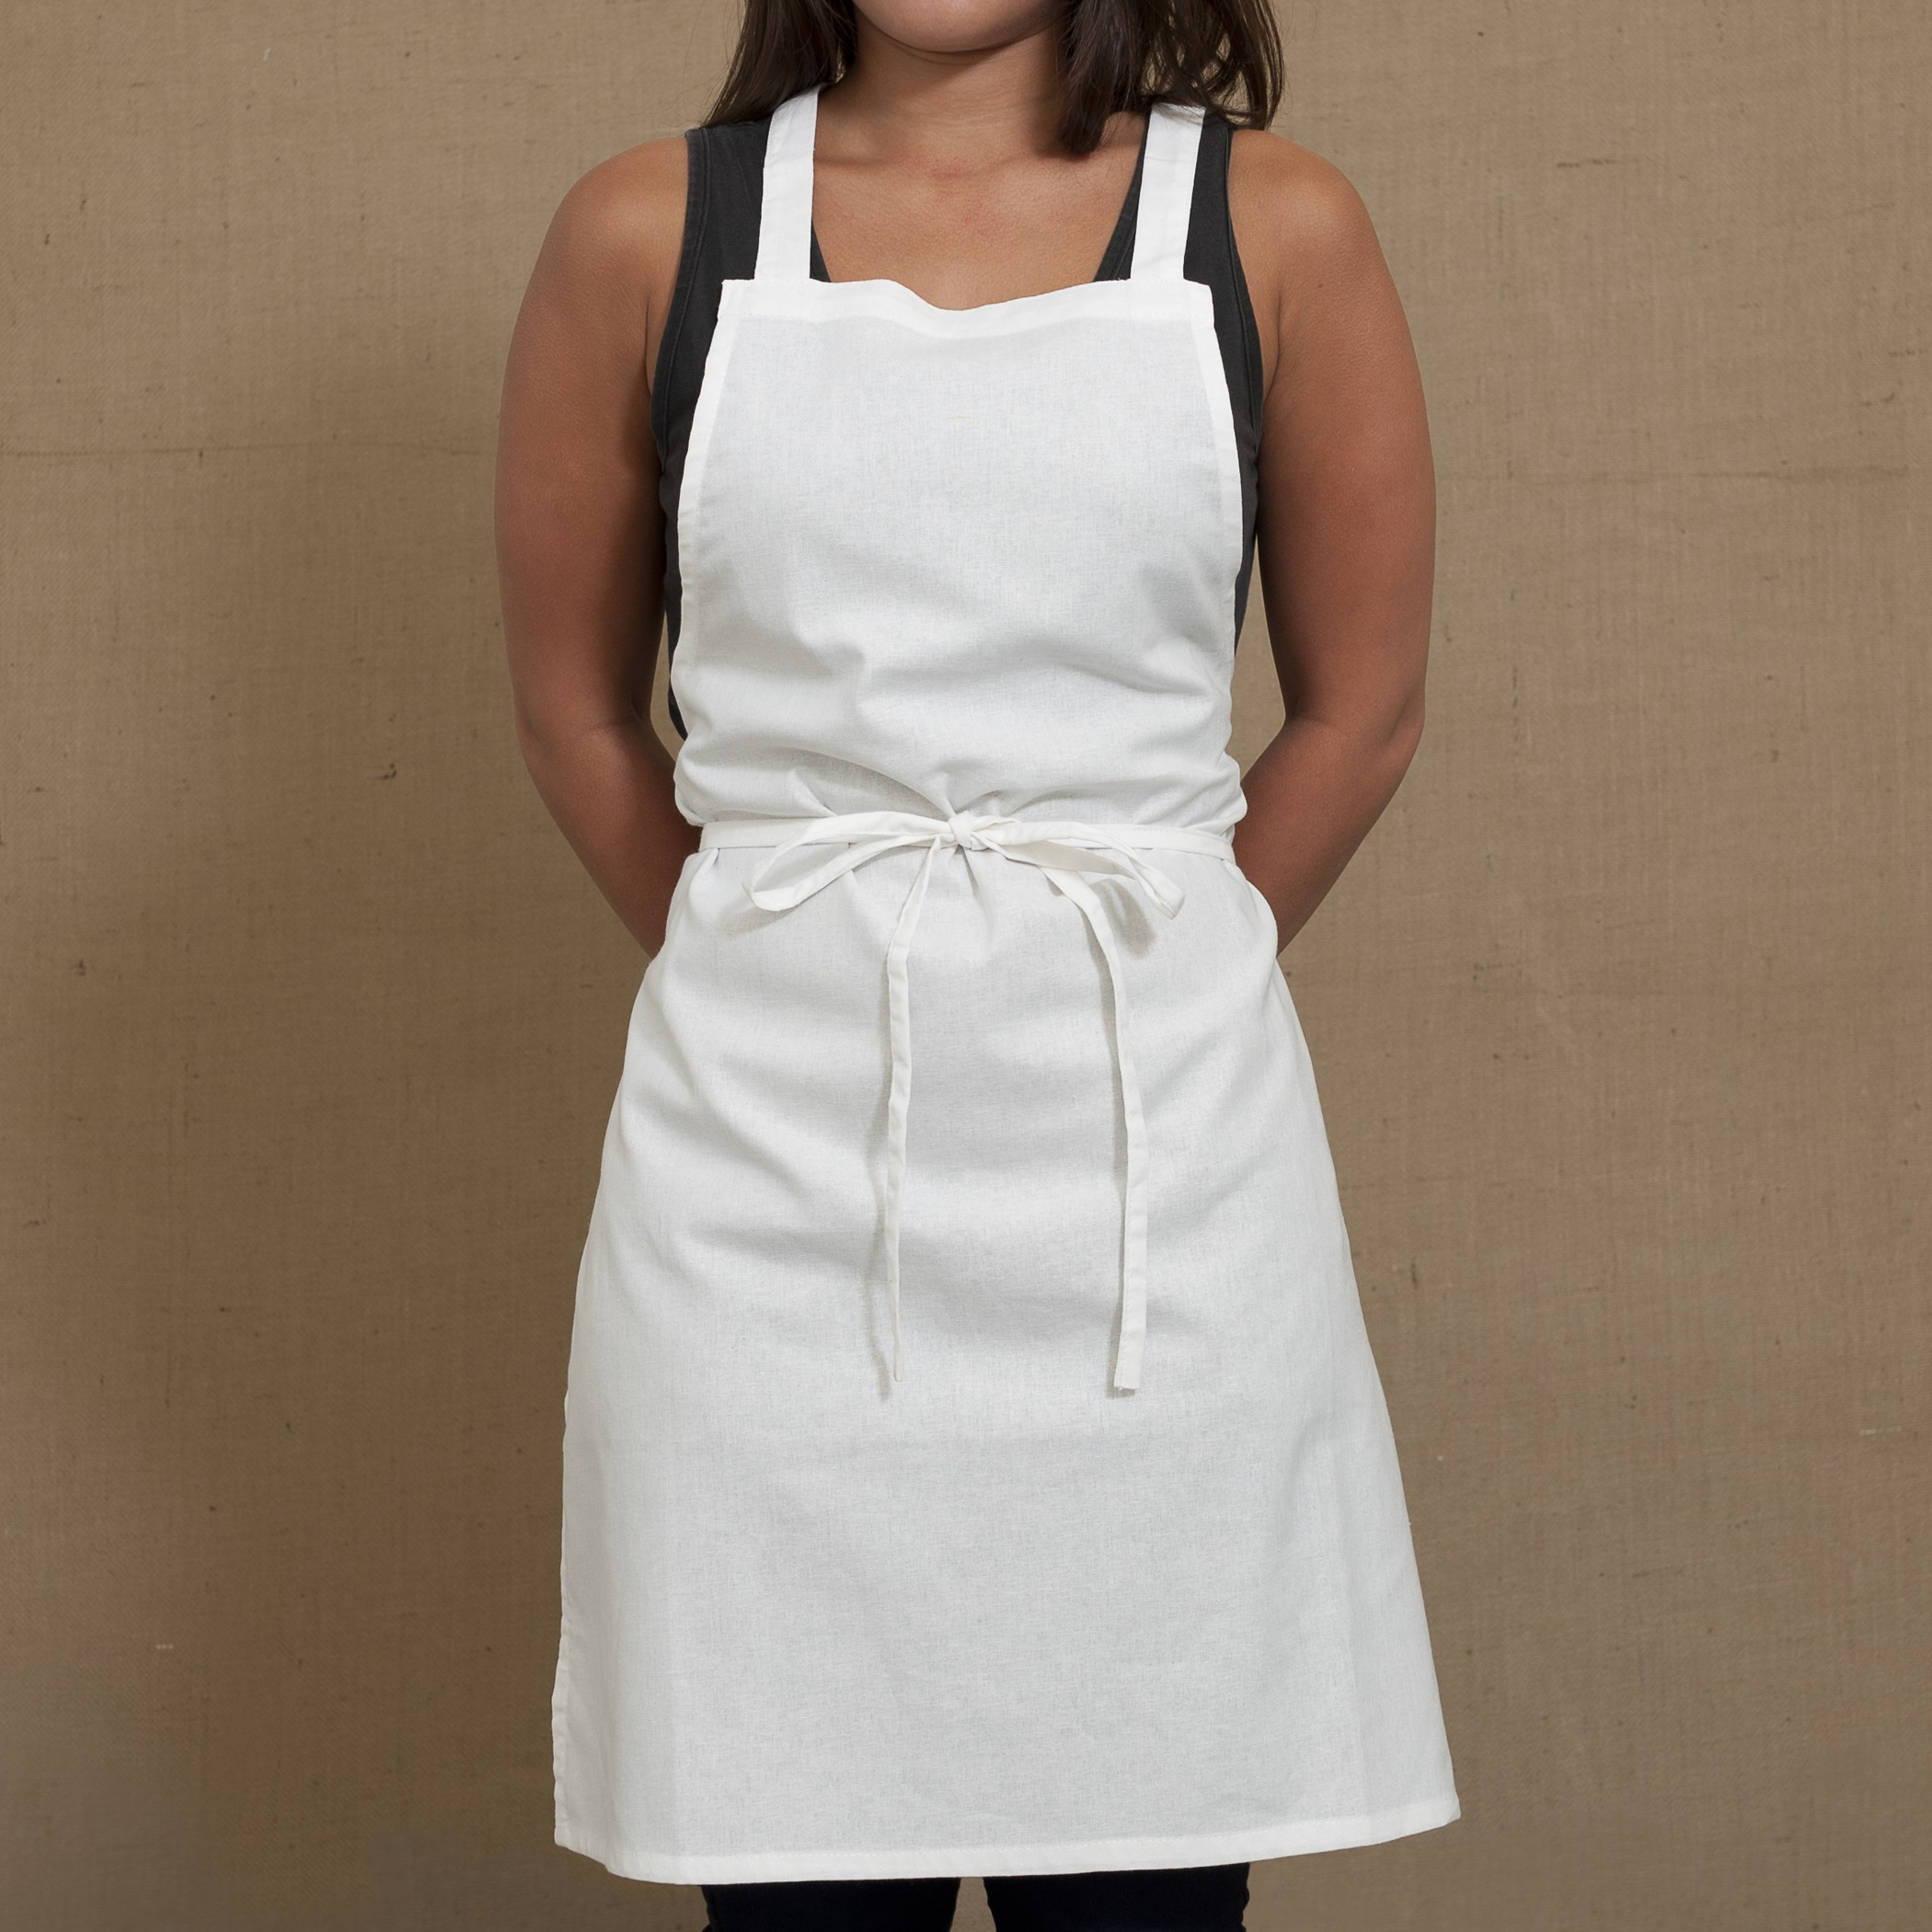 Why should you wear an apron when performing your household chores